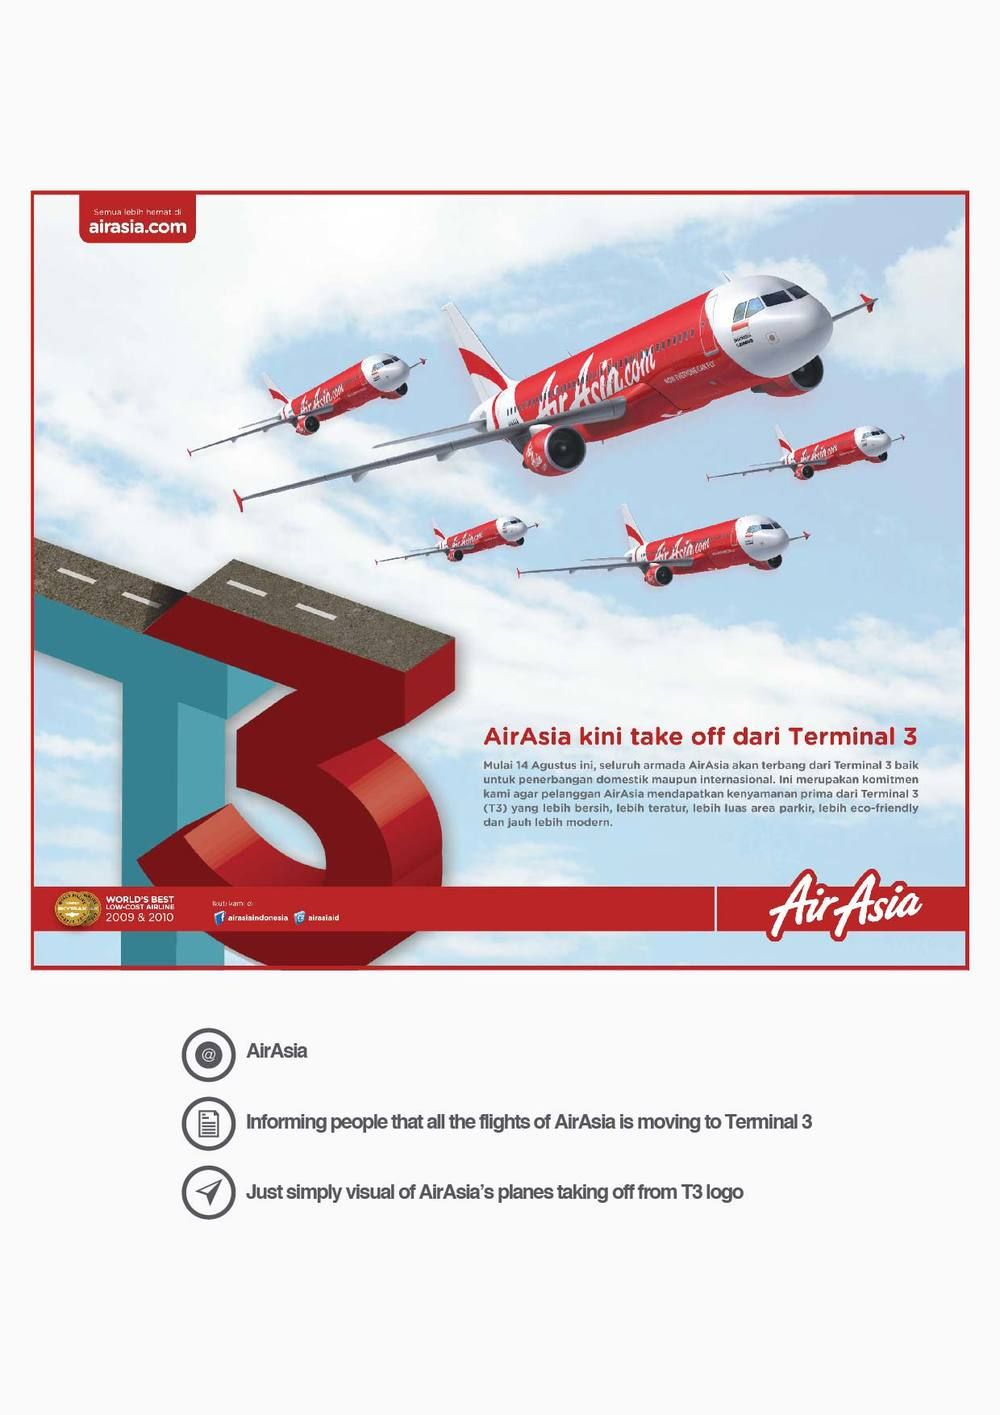 AirAsia Informing people that all the flights of AirAsia is moving to Terminal 3